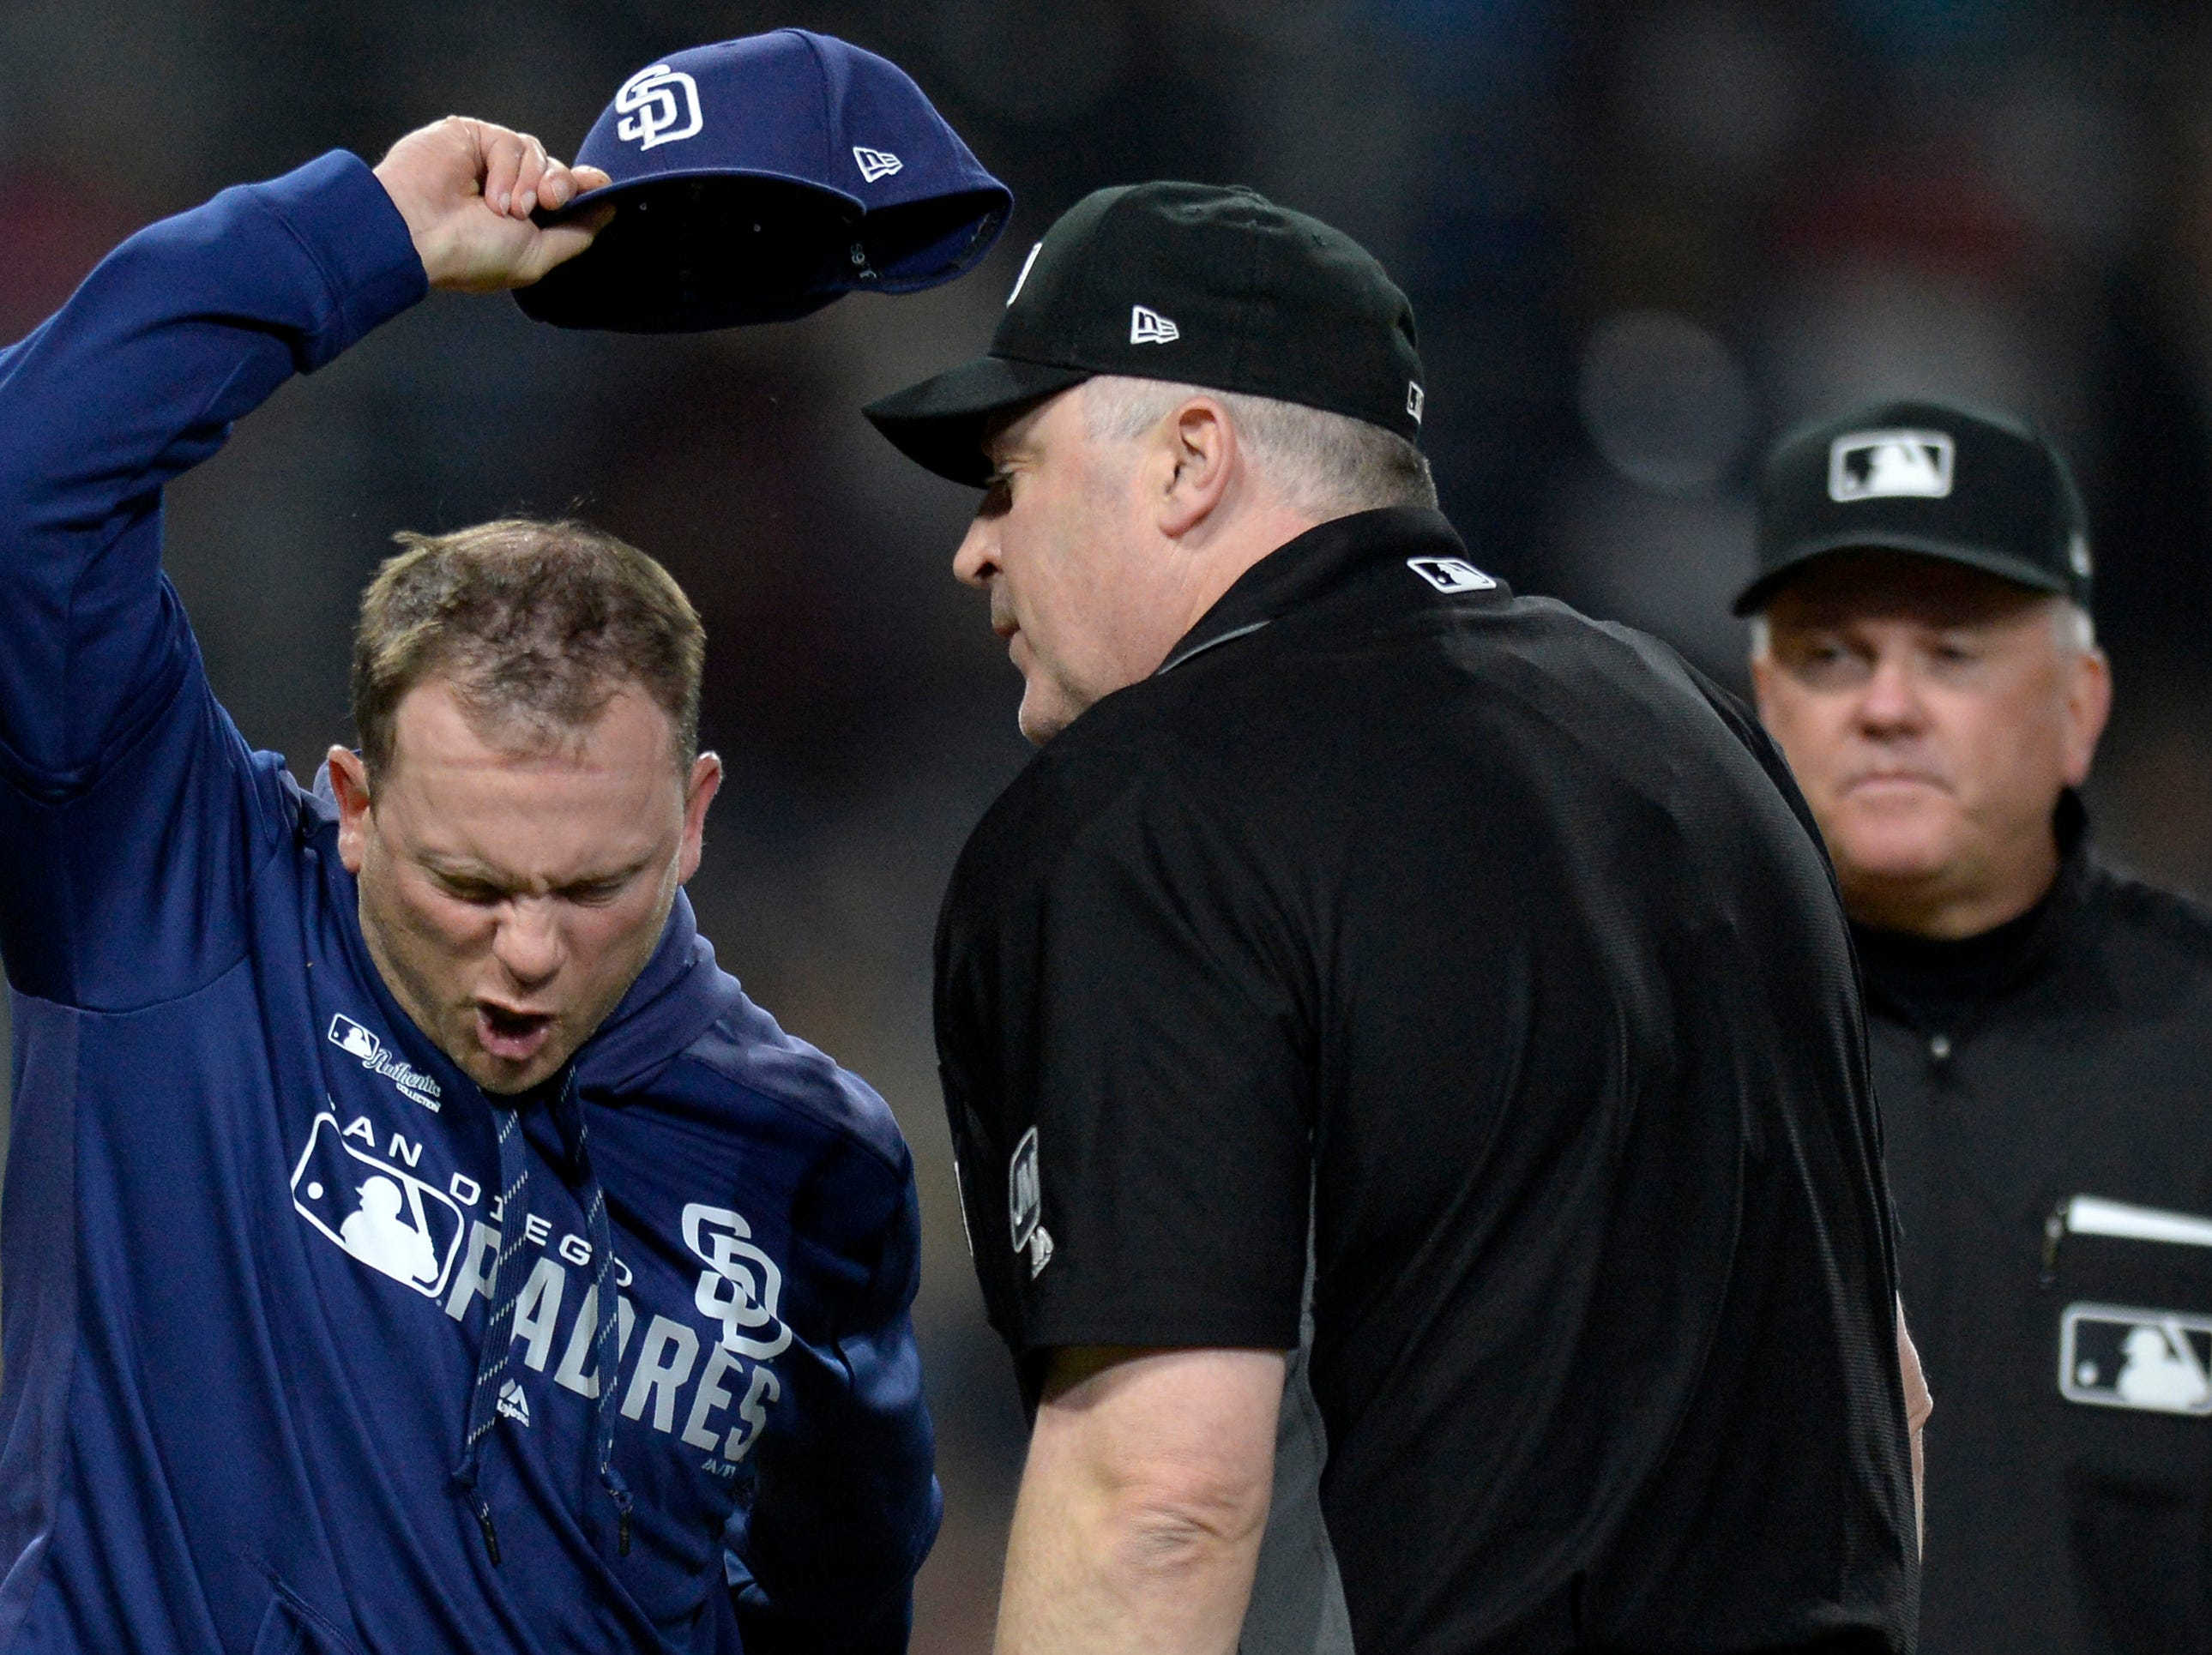 Apr 2, 2019; San Diego, CA, USA; San Diego Padres manager Andy Green (left) argues with umpire Bill Welke (center) as umpire Mike Everitt (right) looks on during the sixth inning against the Arizona Diamondbacks at Petco Park. Mandatory Credit: Jake Roth-USA TODAY Sports